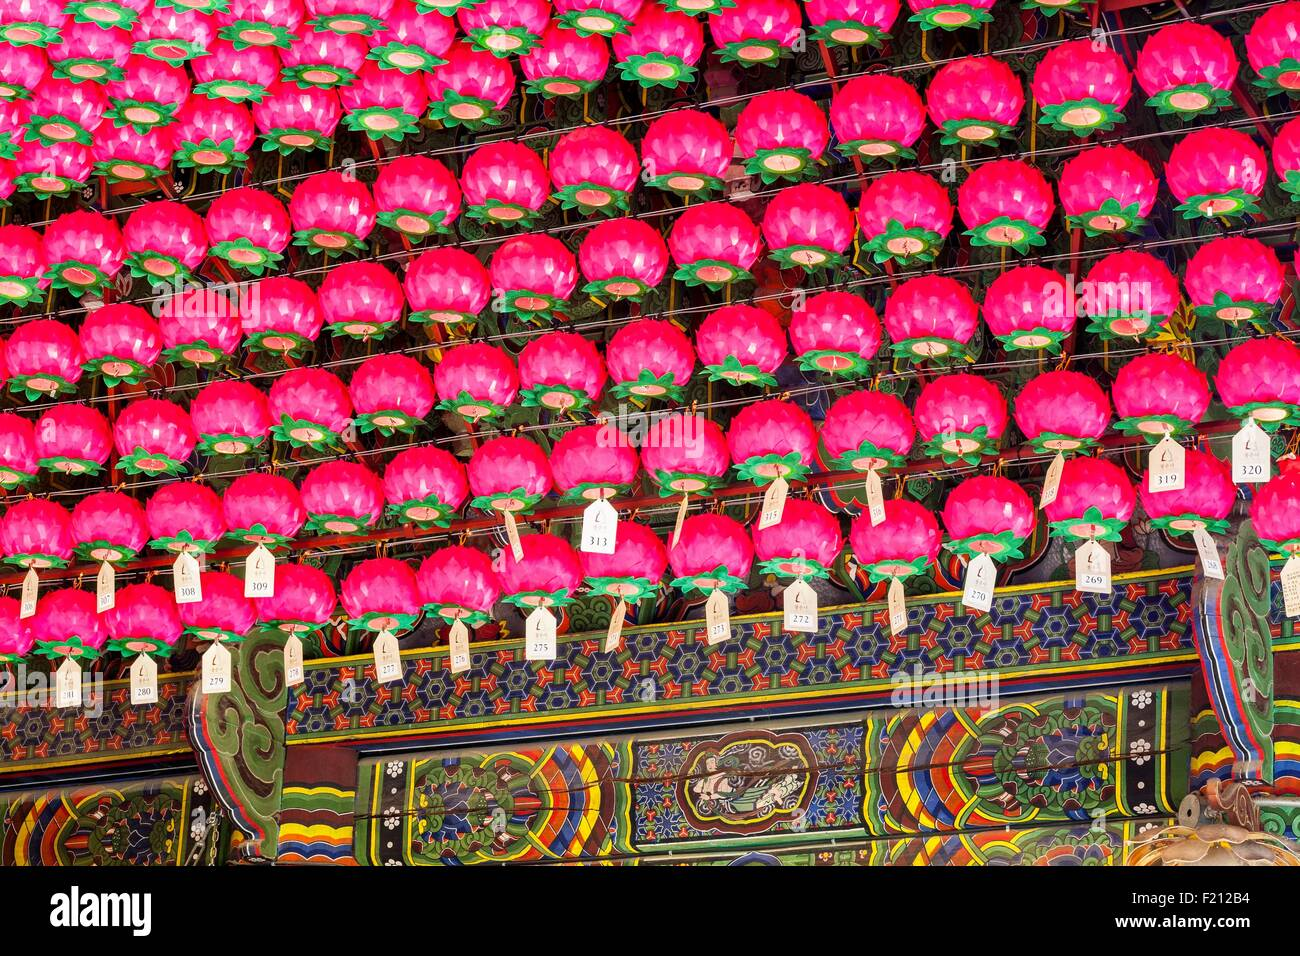 South Korea, Seoul, Samseong-dong, Bongeunsa Buddhist temple founded in the 8th century, lotus-shaped lanterns - Stock Image